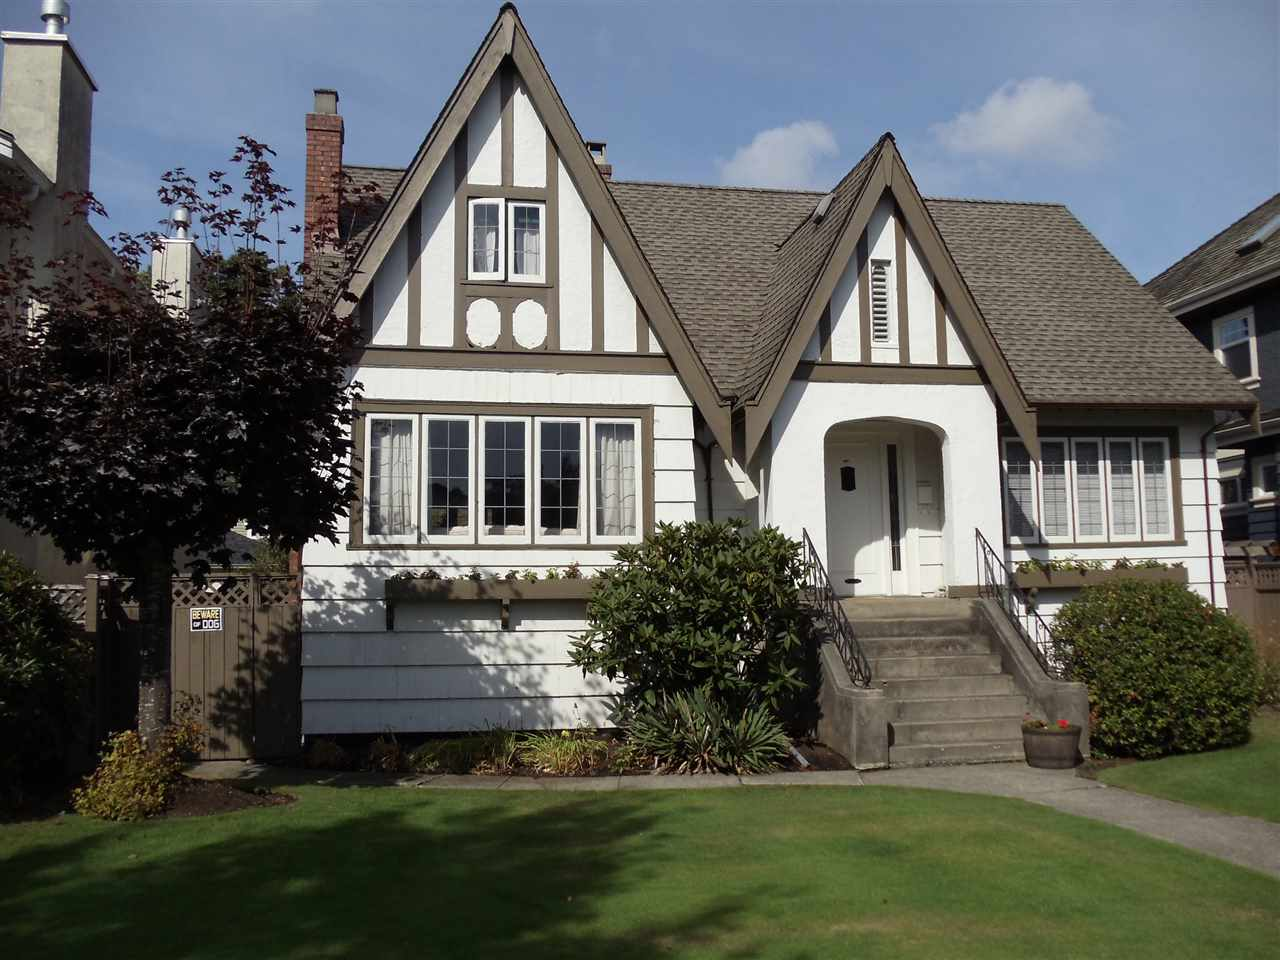 Attention Developers, Renovators & Investors. Traditional west side tudor style home located in prestige McKenzie Heights situated on flat 50x130 lot, paved lane, fully fenced yard. Covered sundeck and landing. Perfect for owner/investor as residence or rental for future build. Oil tank removed.  Best deal for bigger lot 6500 sq ft in McKenzie Heights!  Open house Nov 18 2-4